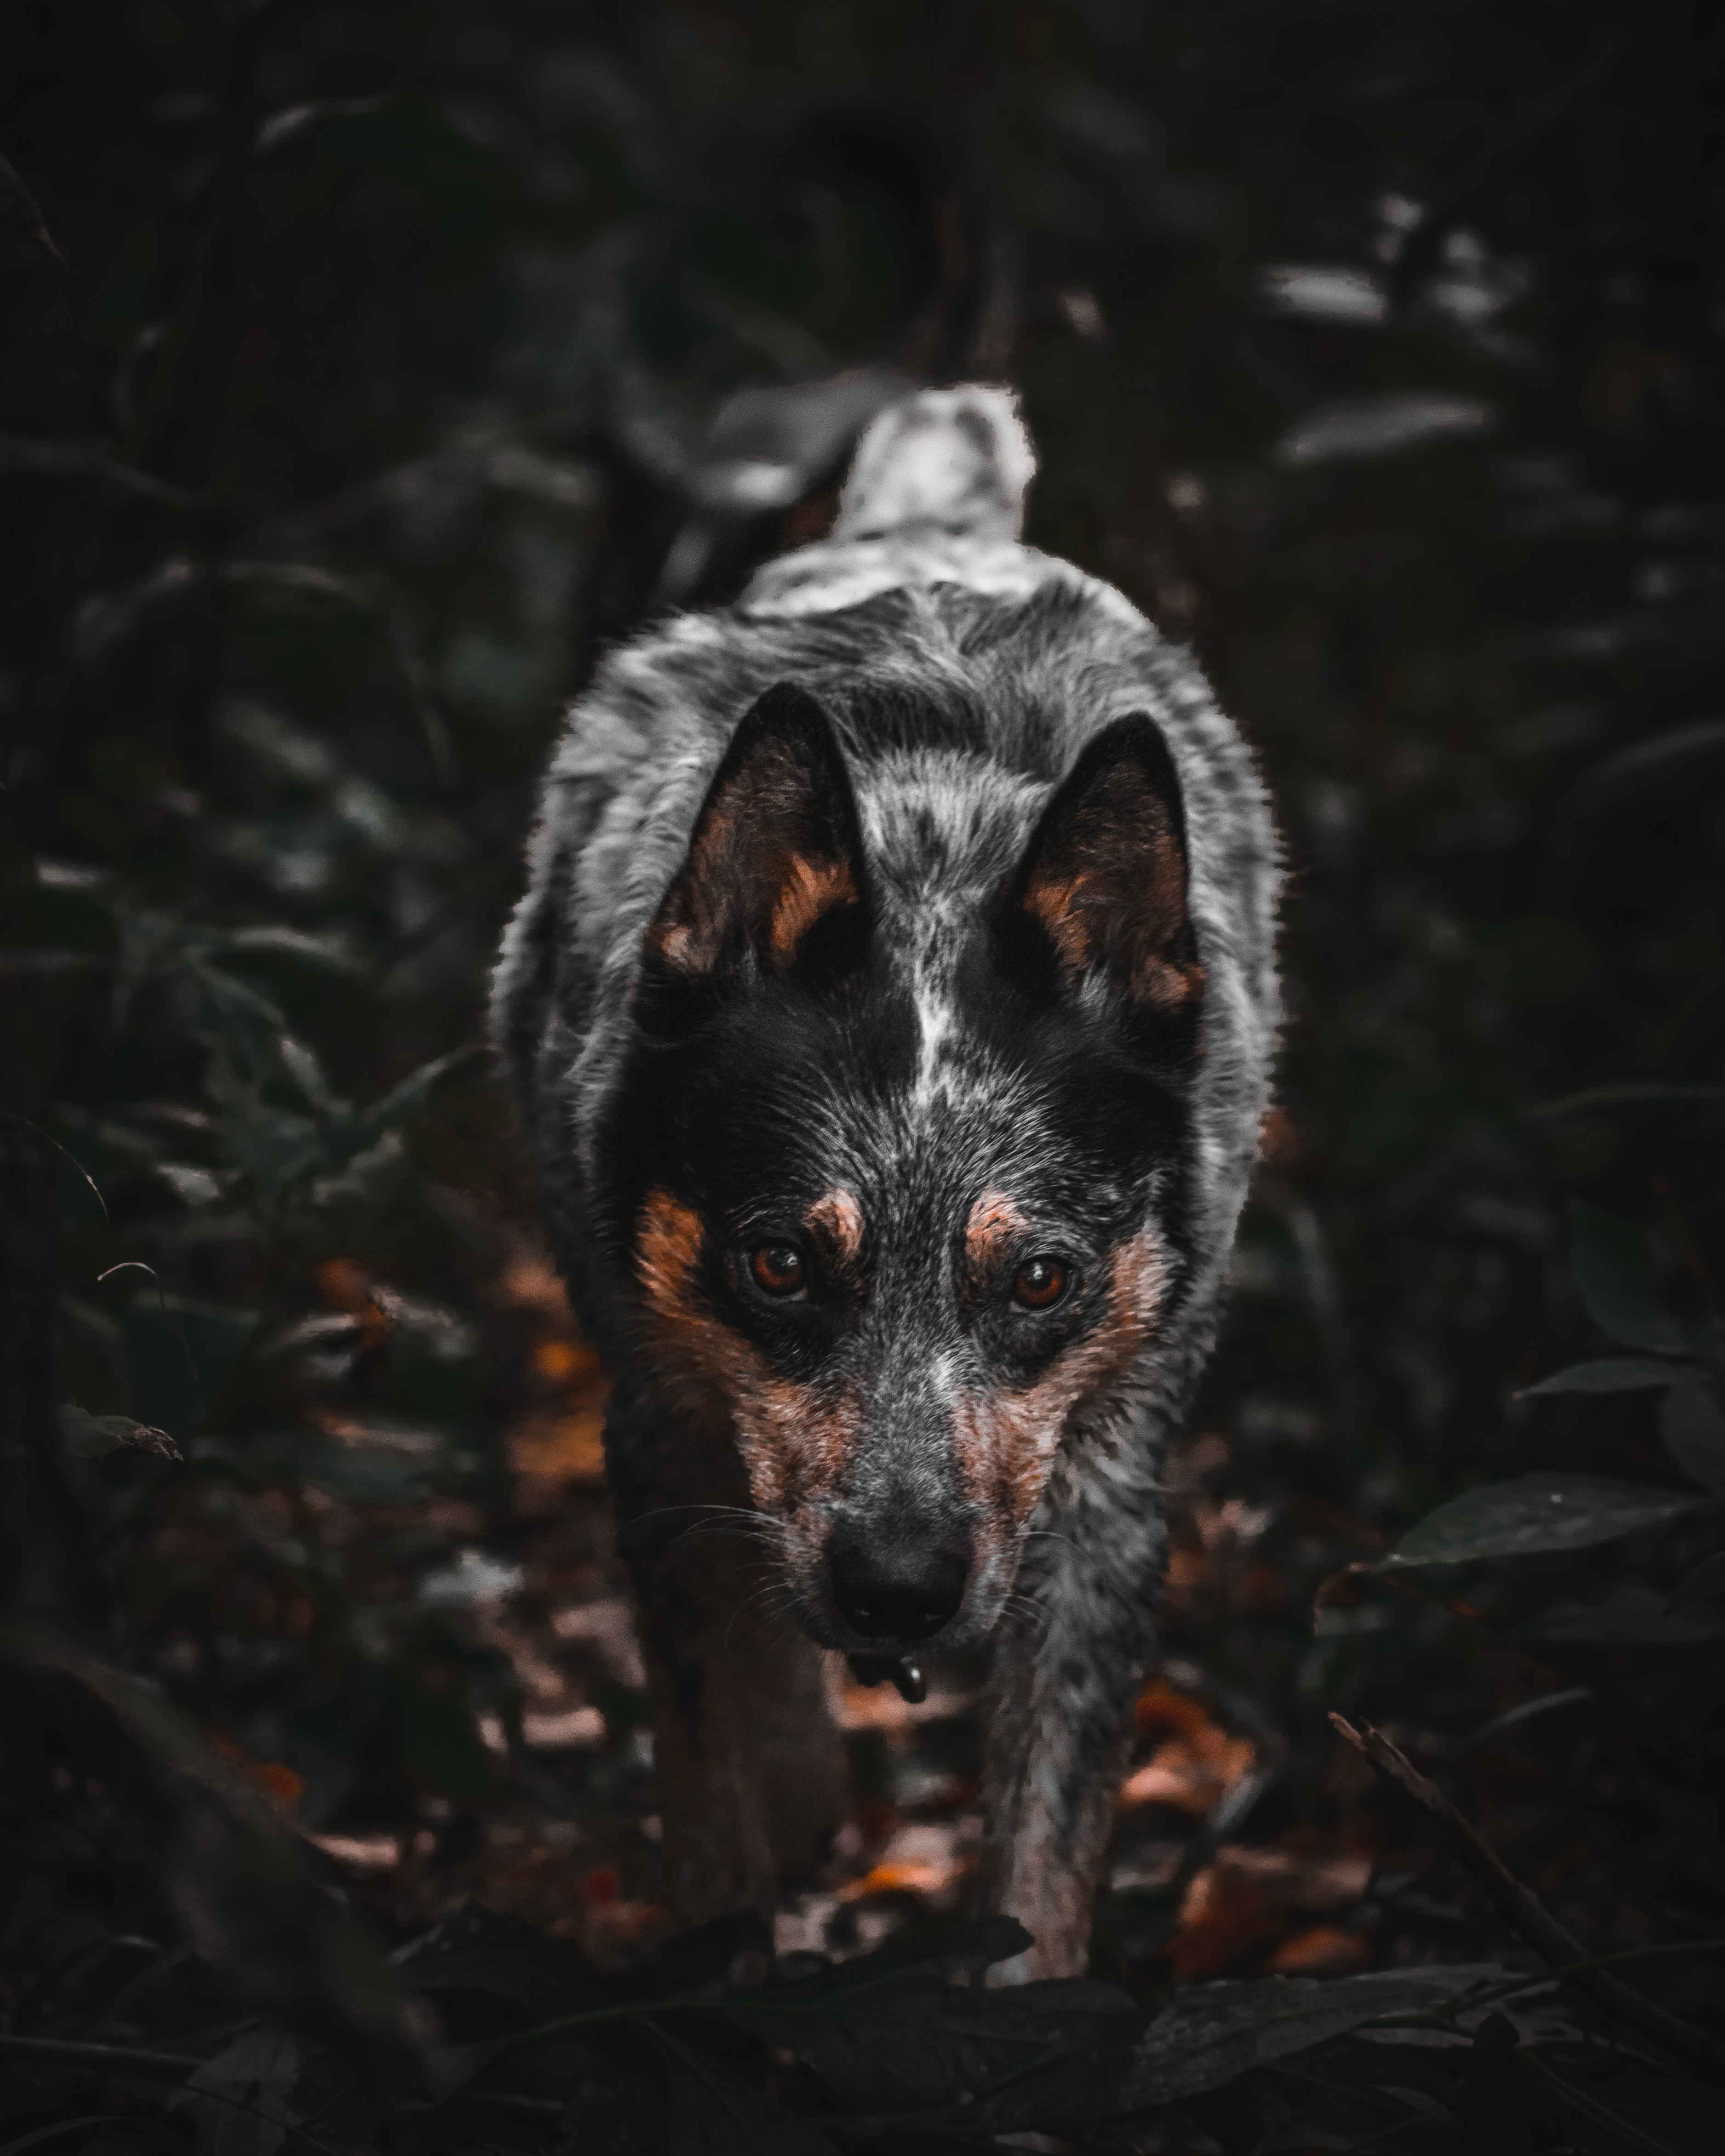 brown and black dog surrounded by leaves